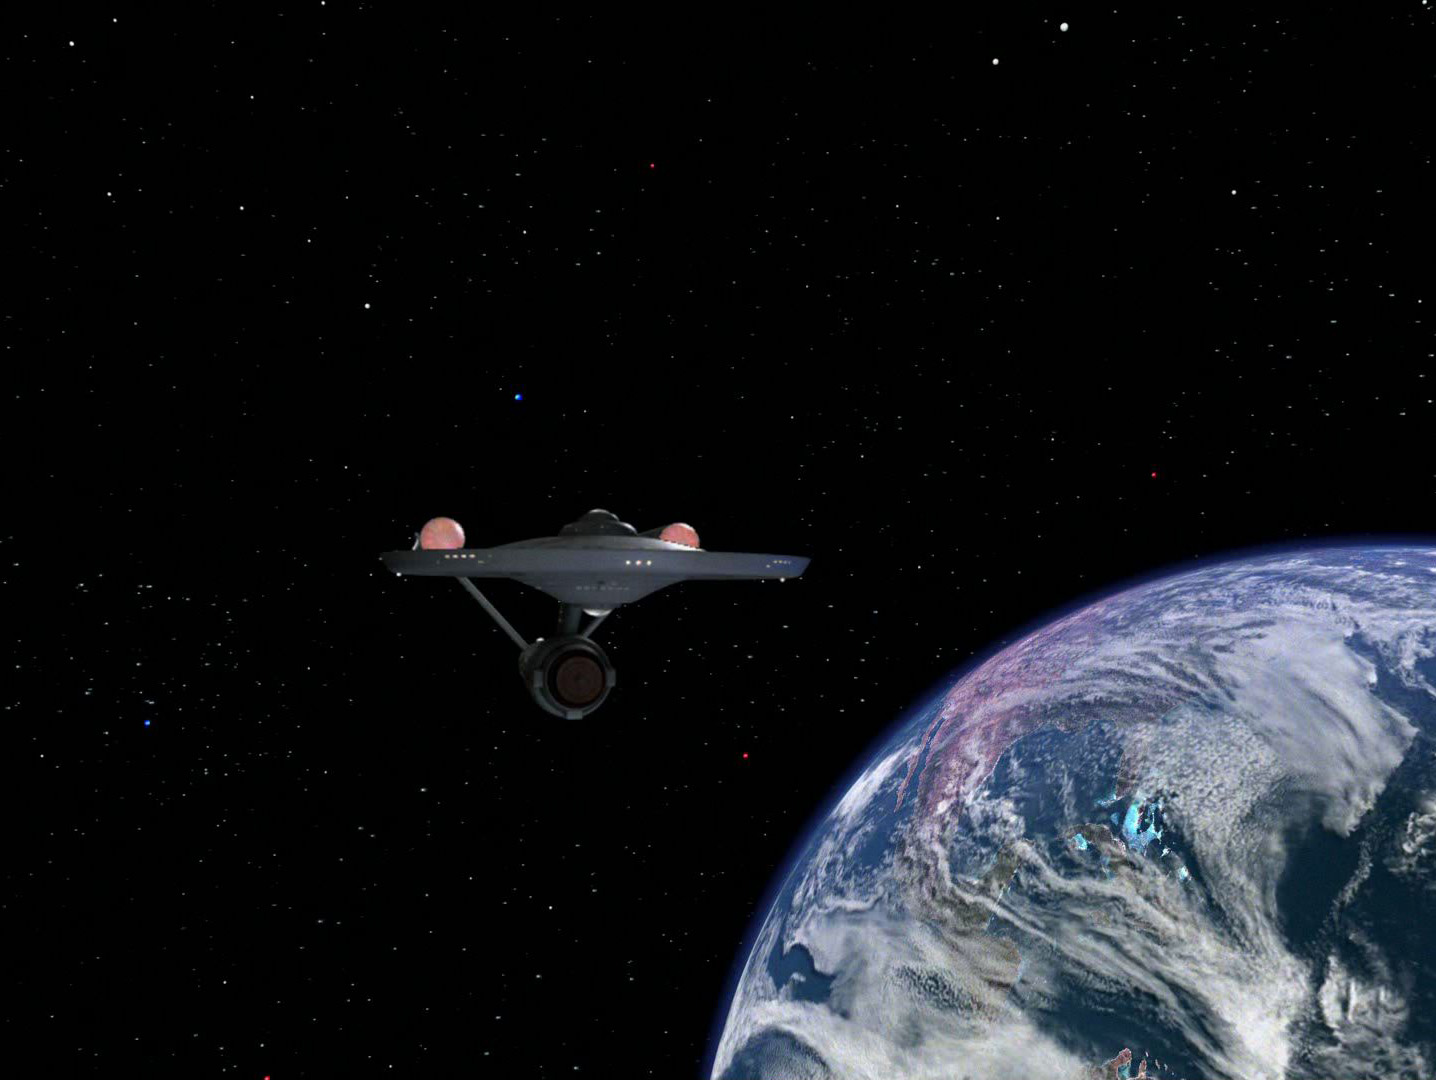 assignment earth Assignment: earth is the last episode of the second season of the american science fiction television series star trek it was first broadcast on march 29, 1968, and initially repeated on august 9, 1968, five months later.